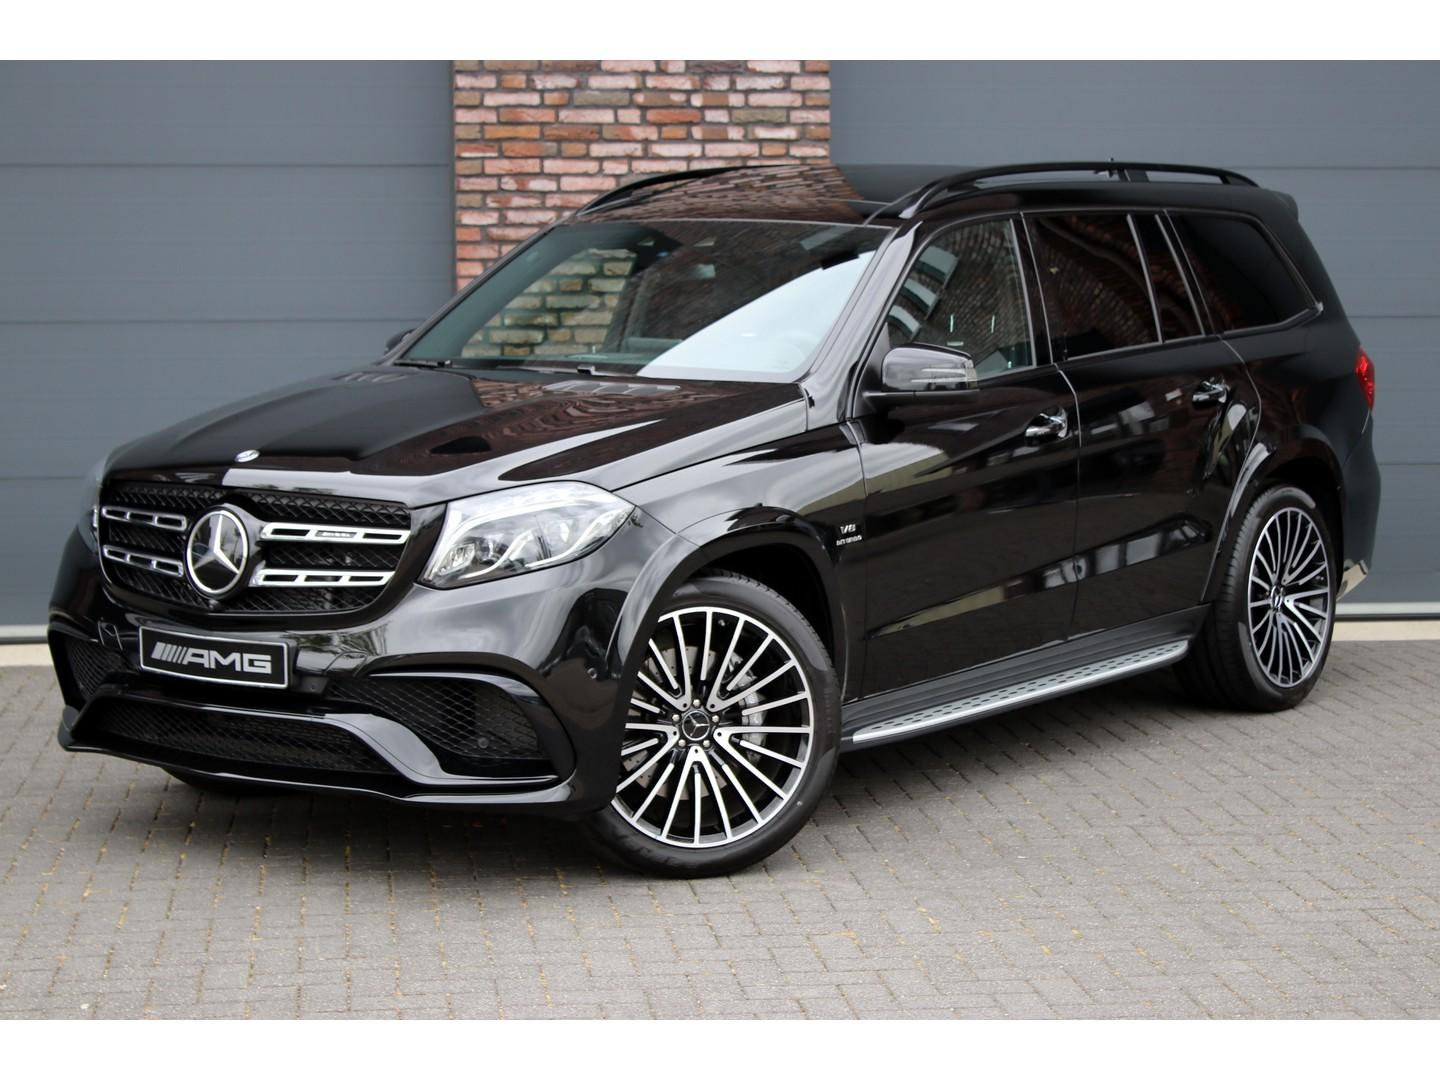 Mercedes-benz Gls 63 s amg 4-matic aut7, luchtvering, distronic+, panoramadak, leder exclusief, memory, massage, stoel-verwarming/ventilatie, entertainment achter, surround camera, elek. trekhaak, harman kardon, dab+, keyless-go, rij-assistentiepakket plus, etc.